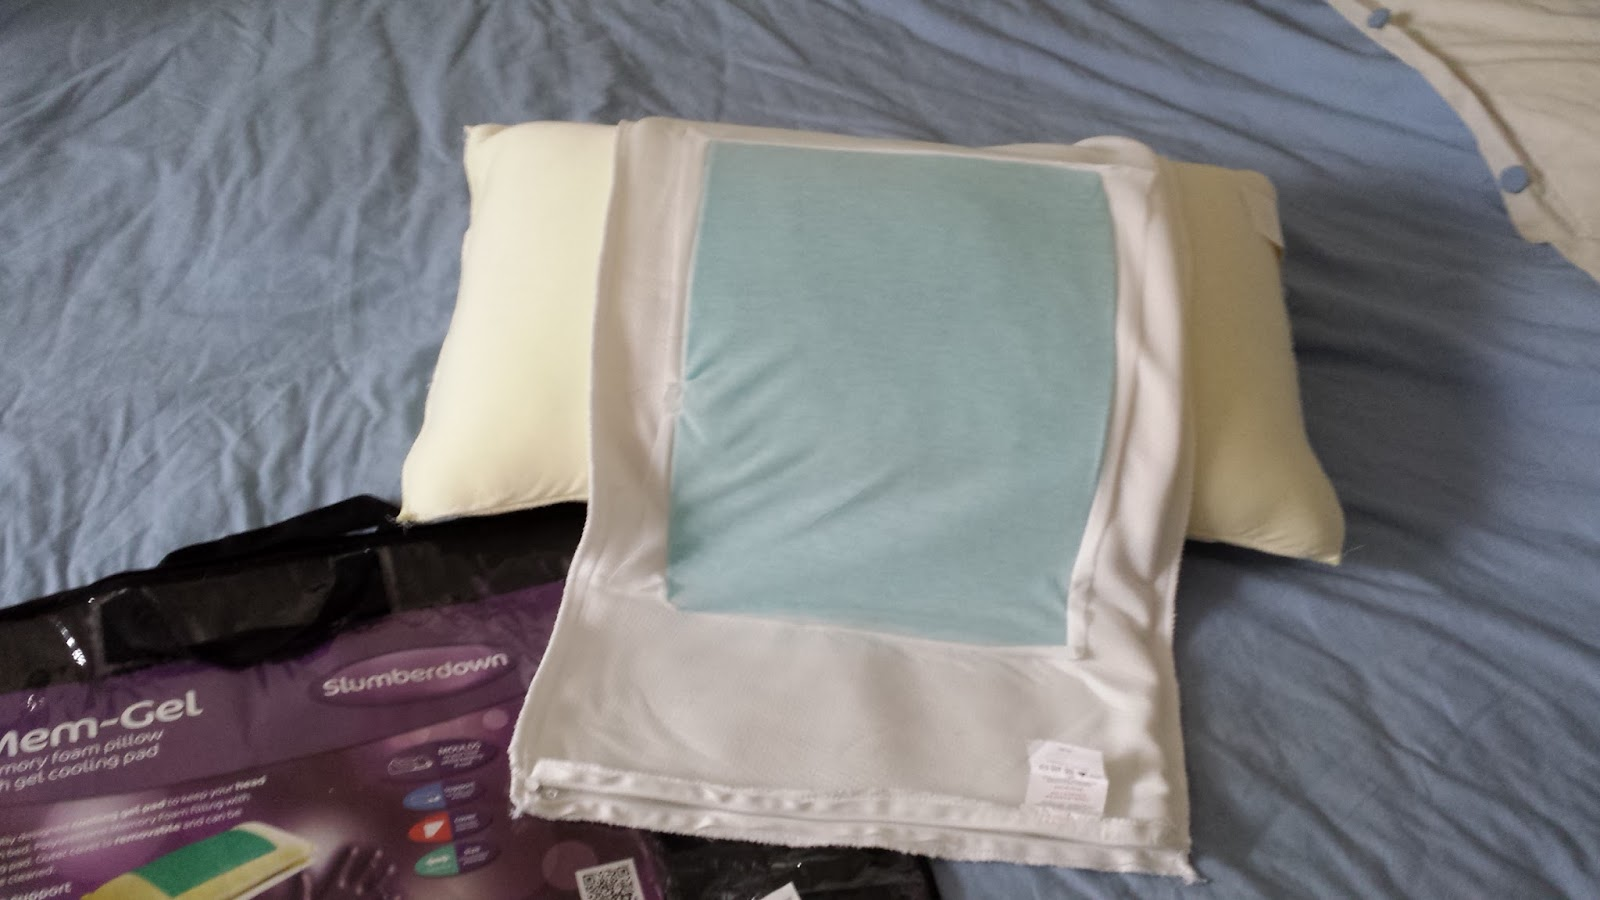 Slumberdown Traditional Memory Foam Pillow Review : Its a London Bird Thing!: Chill Out with Mem-Gel Slumberdown Pillow Review